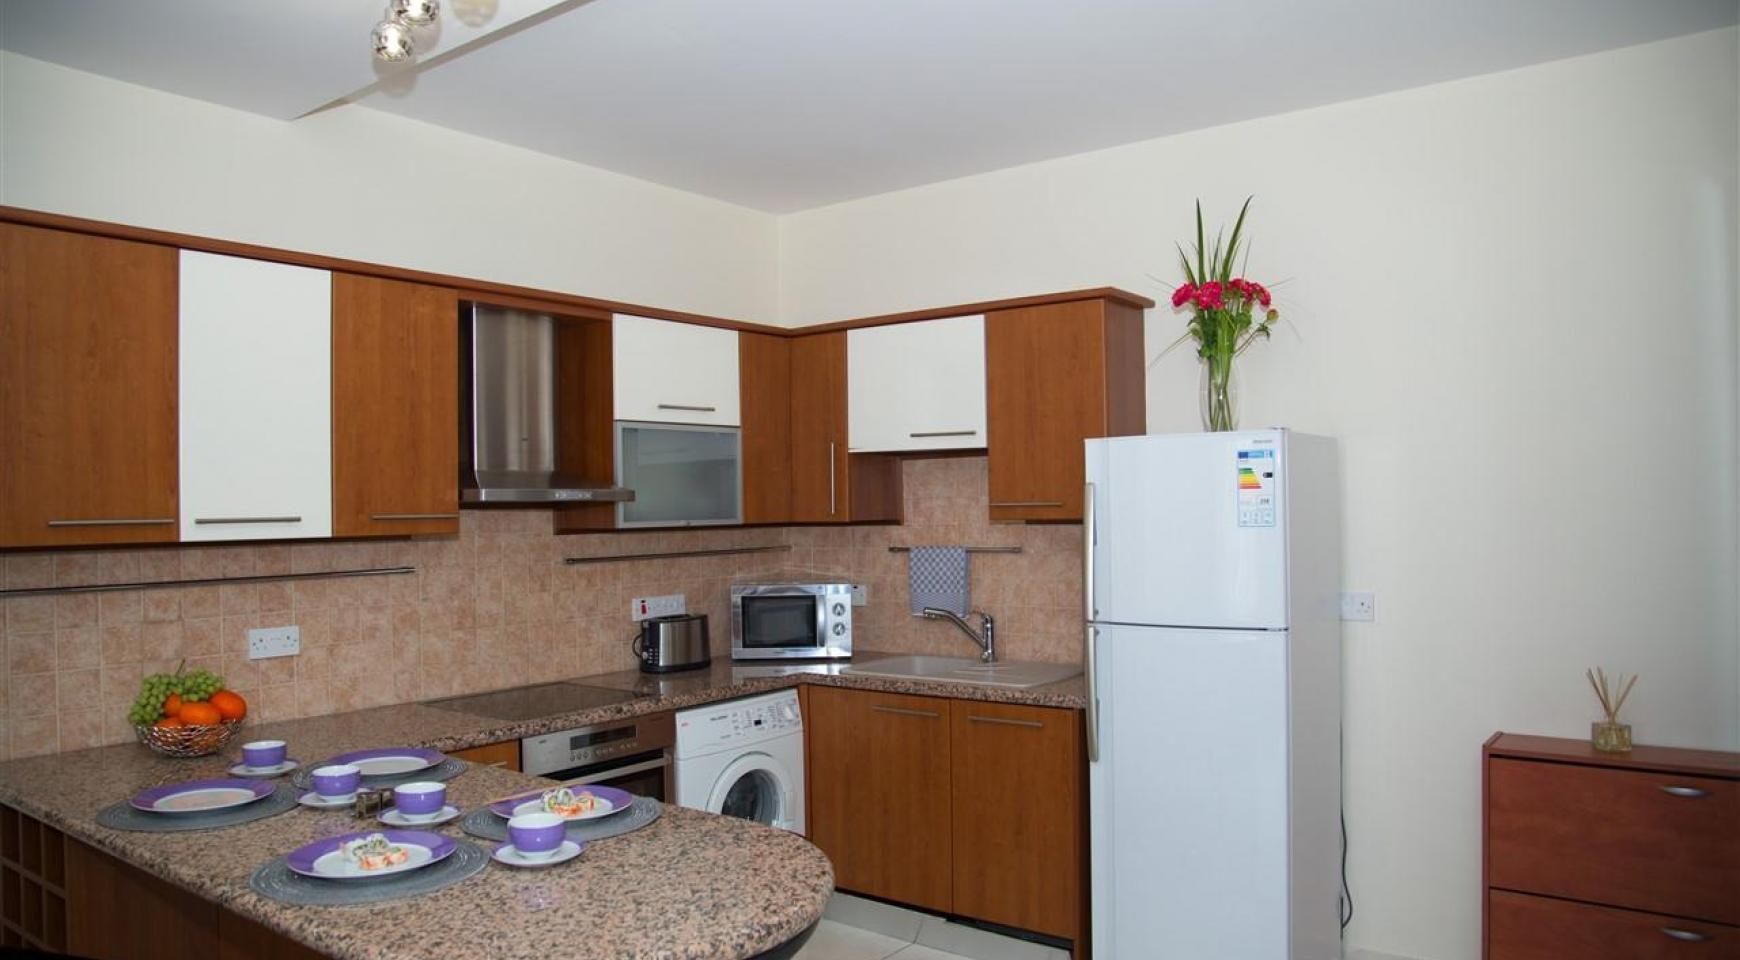 Αντίγραφο Luxury 2 Bedroom Apartment Mesogios Iris 304 in the Tourist area near the Beach - 10